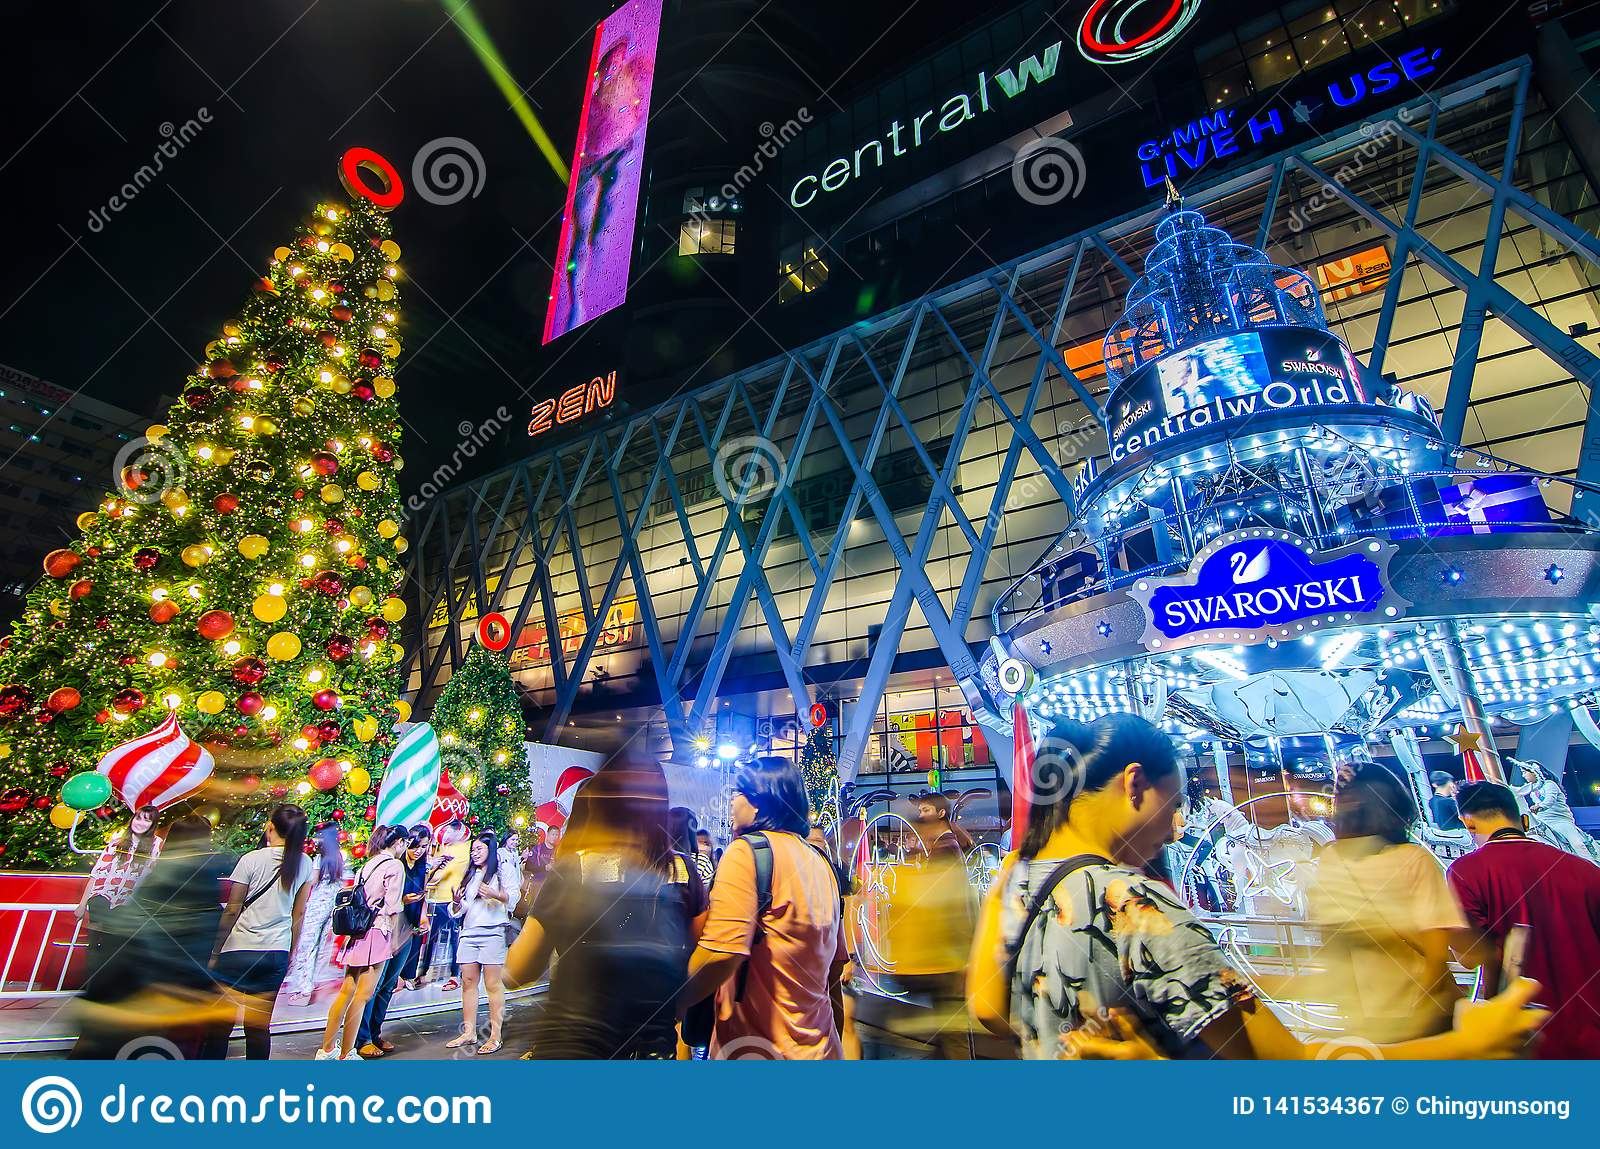 Welcome To Christmas.Centralworld Shopping Mall At Night Welcome To Christmas